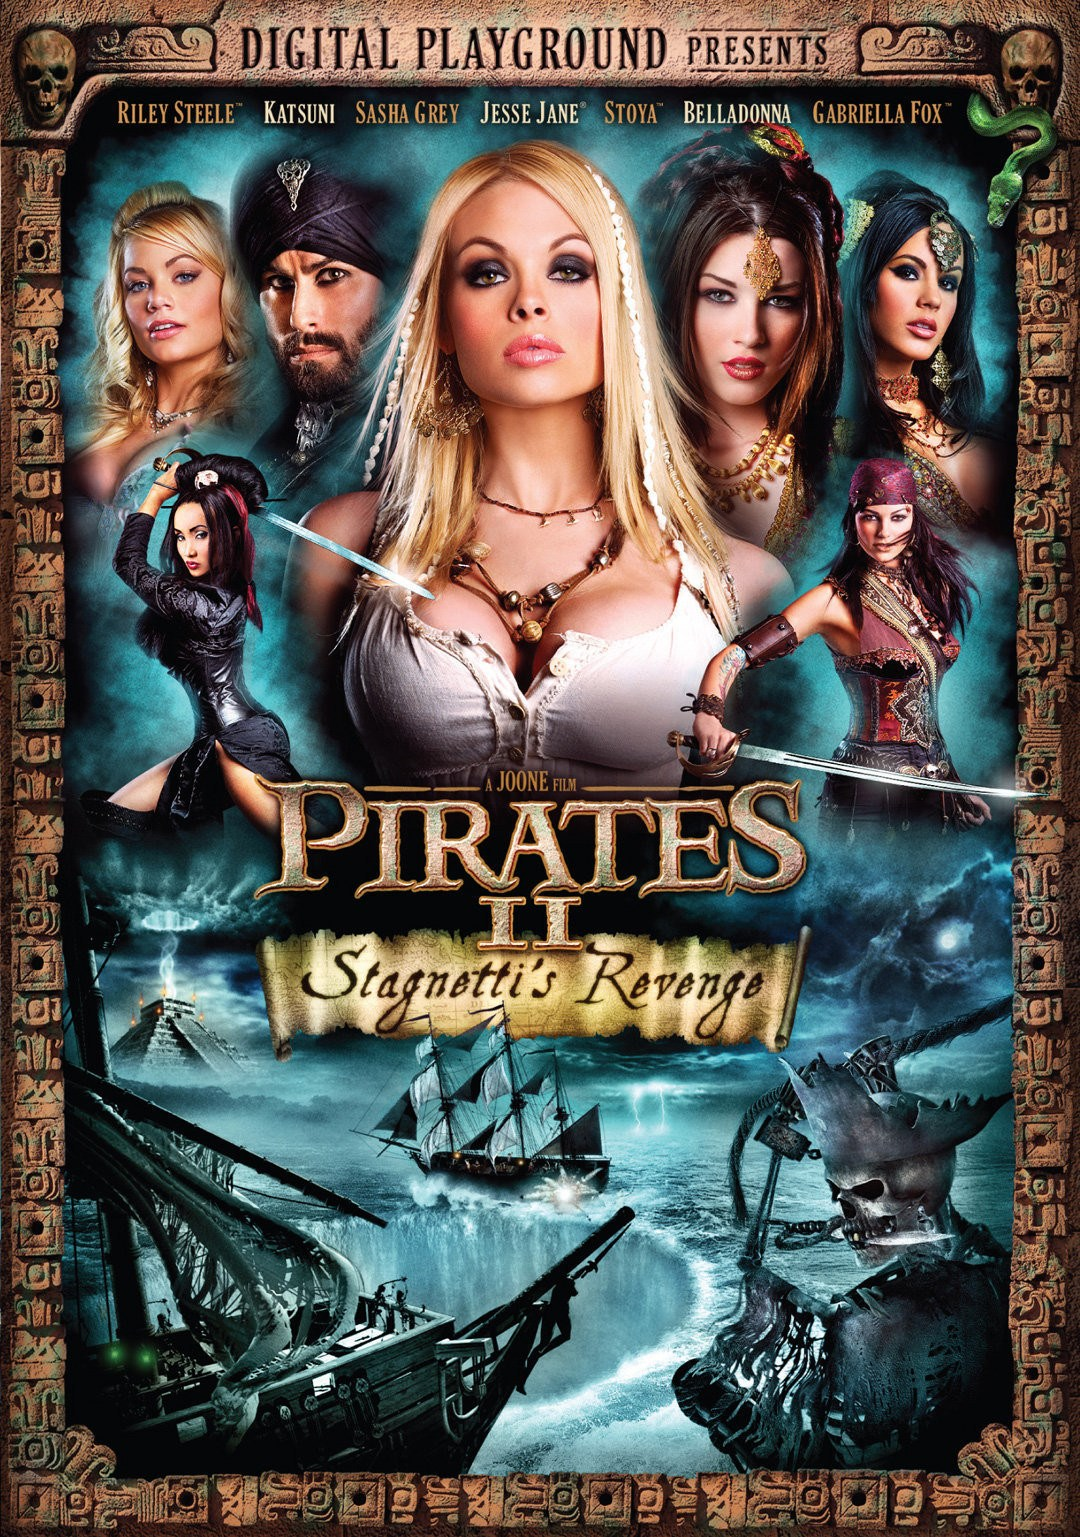 Pirates 2 stagnettis revenge unrated online free